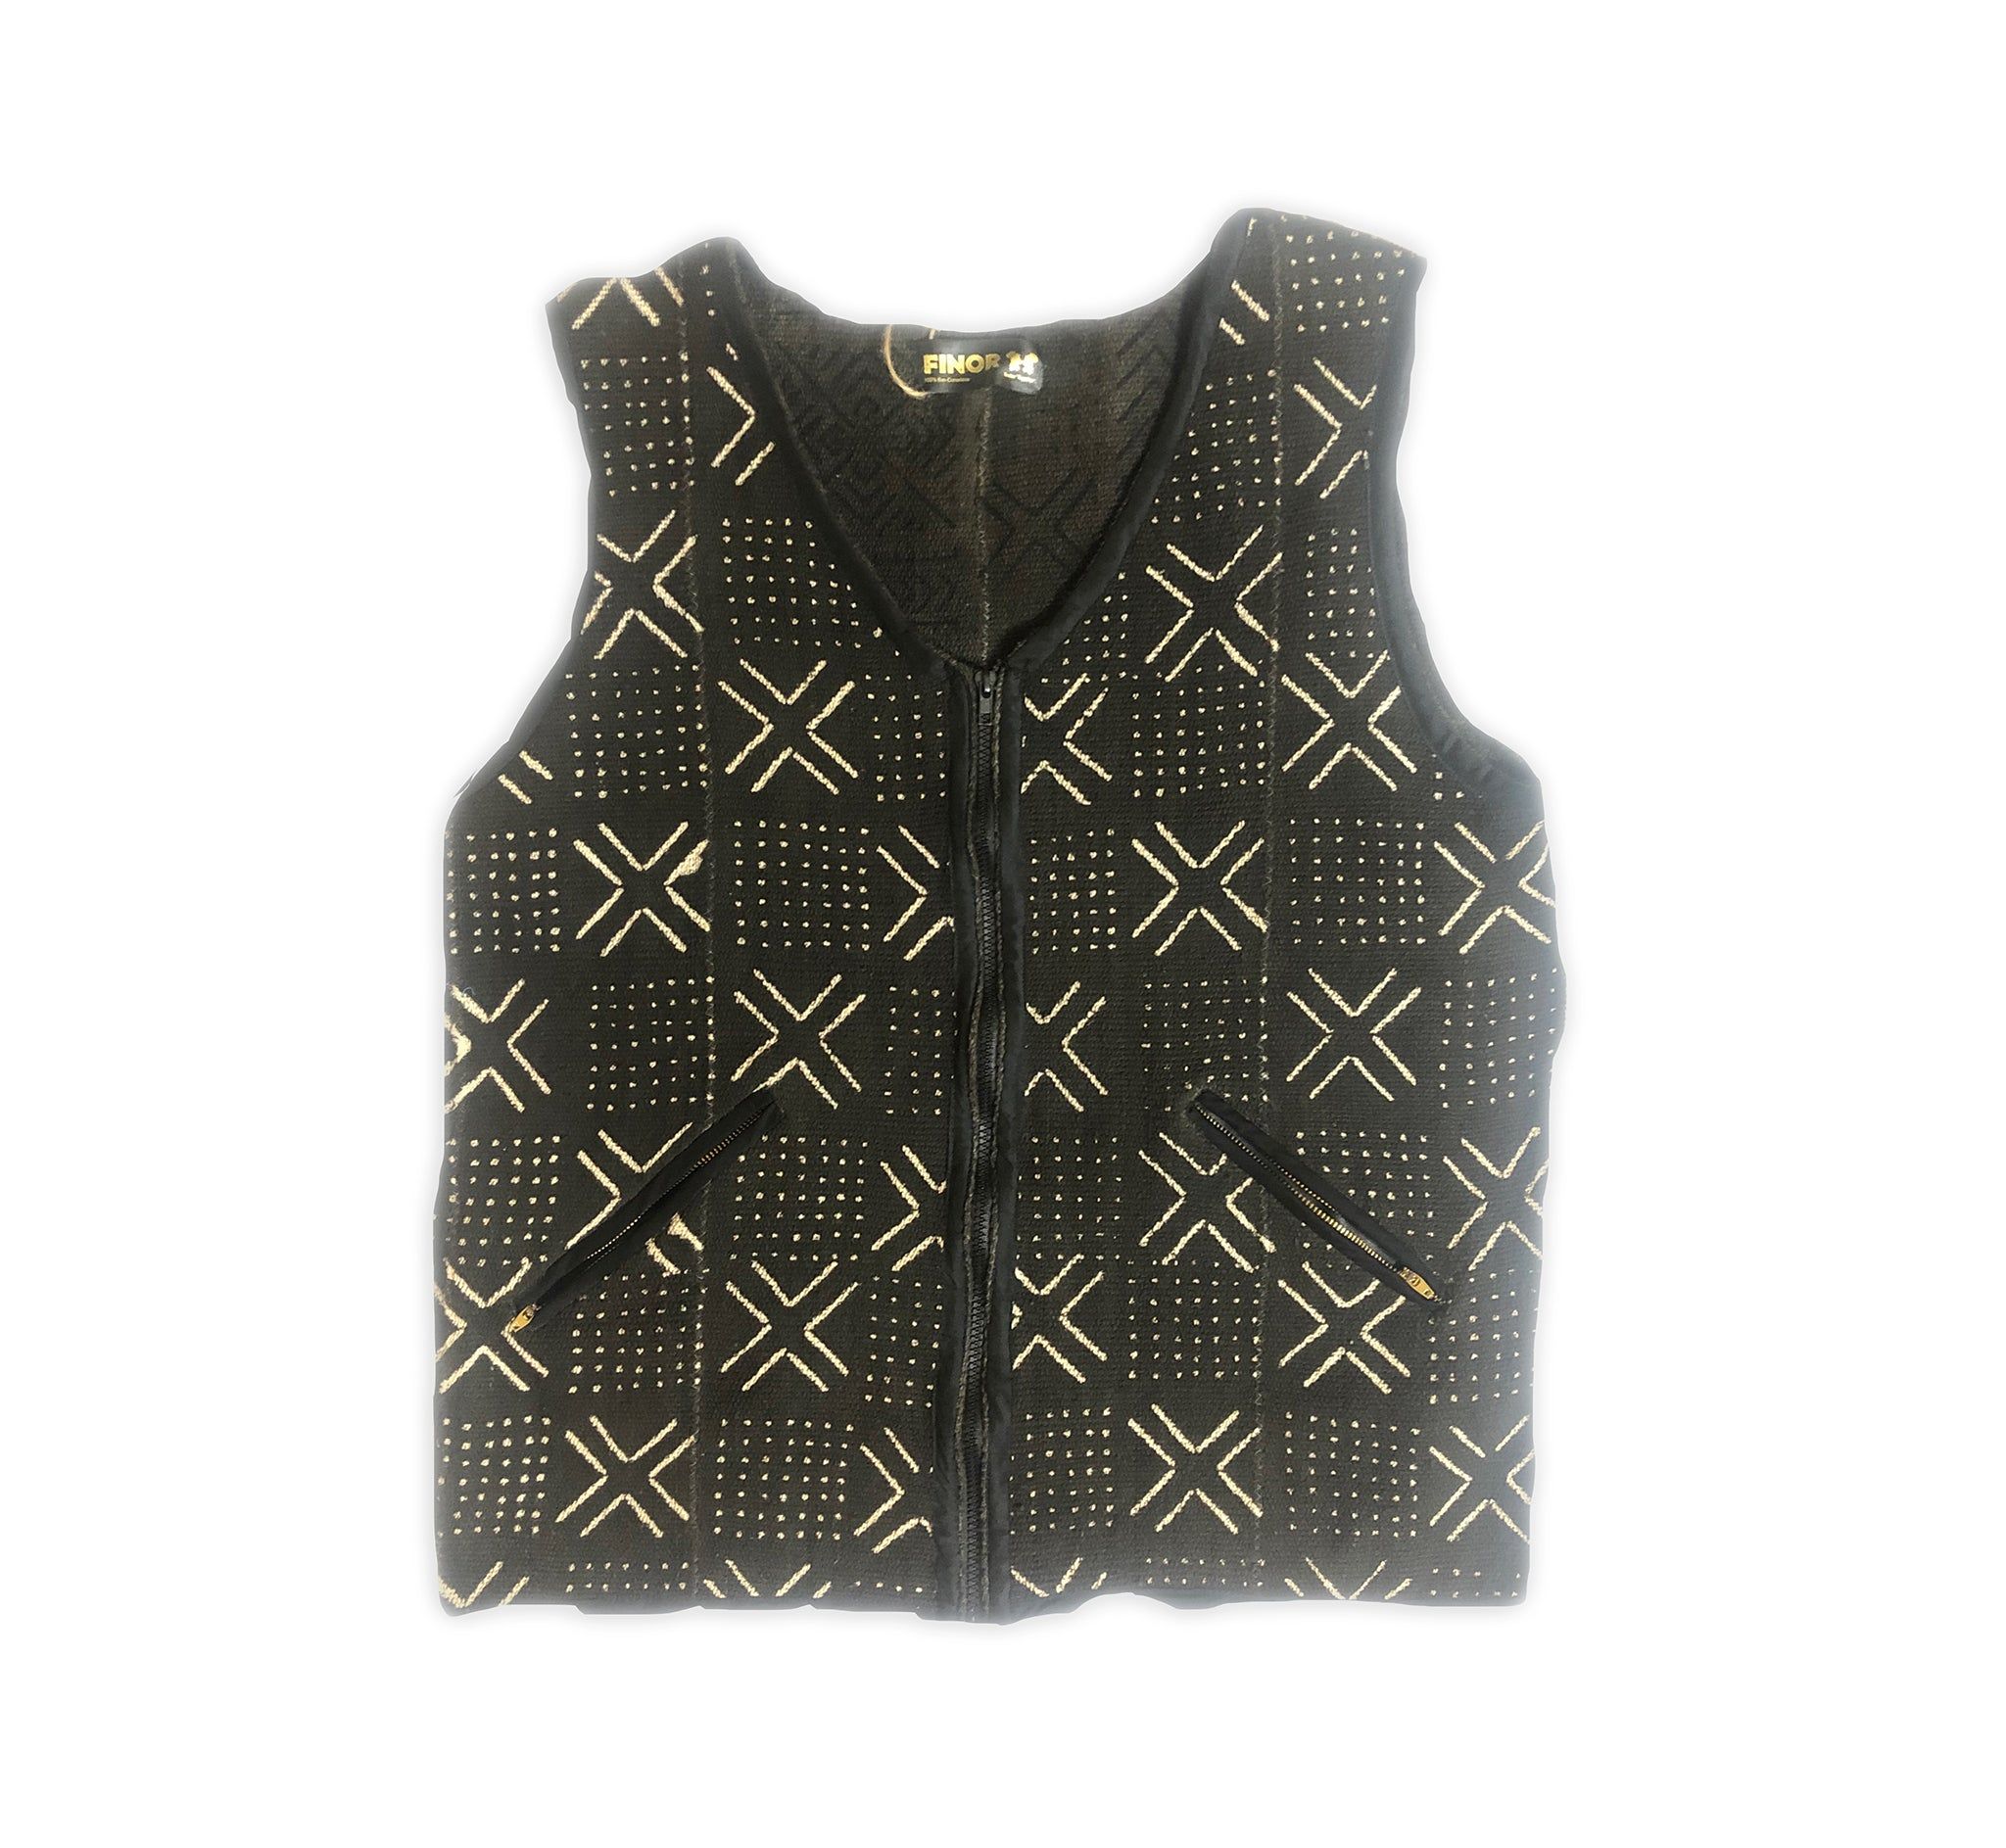 Mansa Musa Vest: Black Mud Cloth Vest